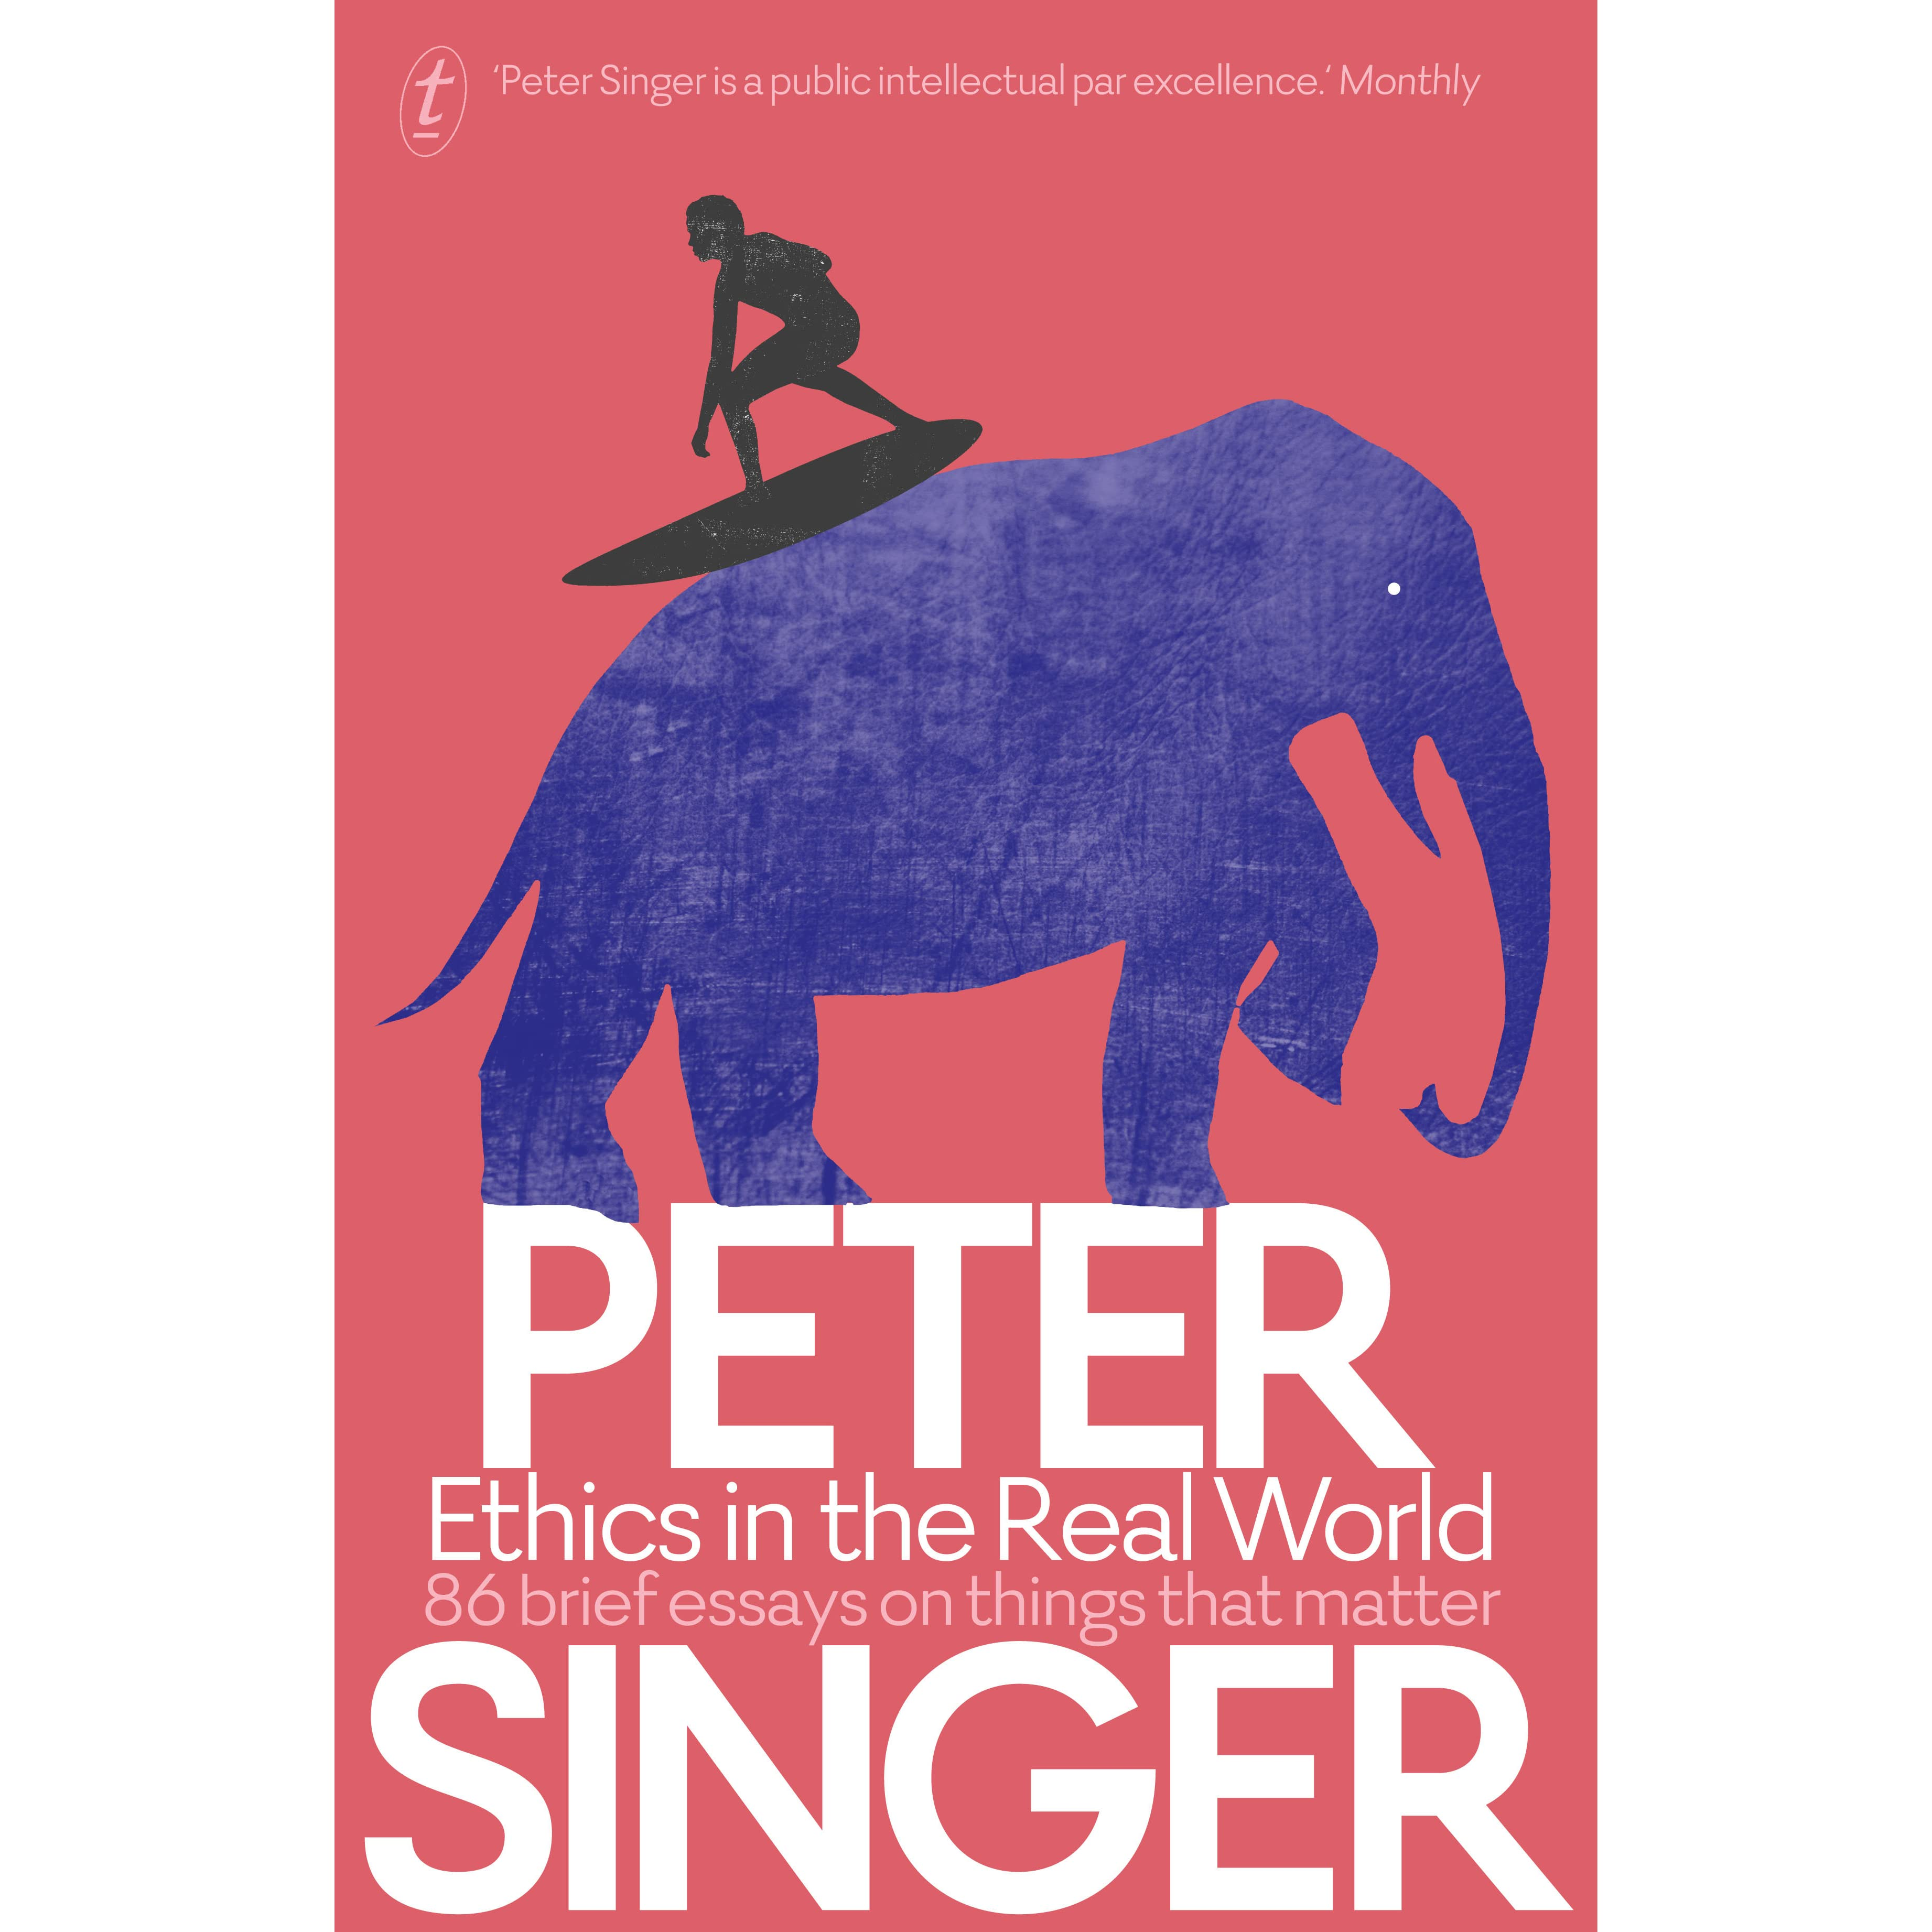 ethics in the real world brief essays on things that matter by ethics in the real world 86 brief essays on things that matter by peter singer reviews discussion bookclubs lists